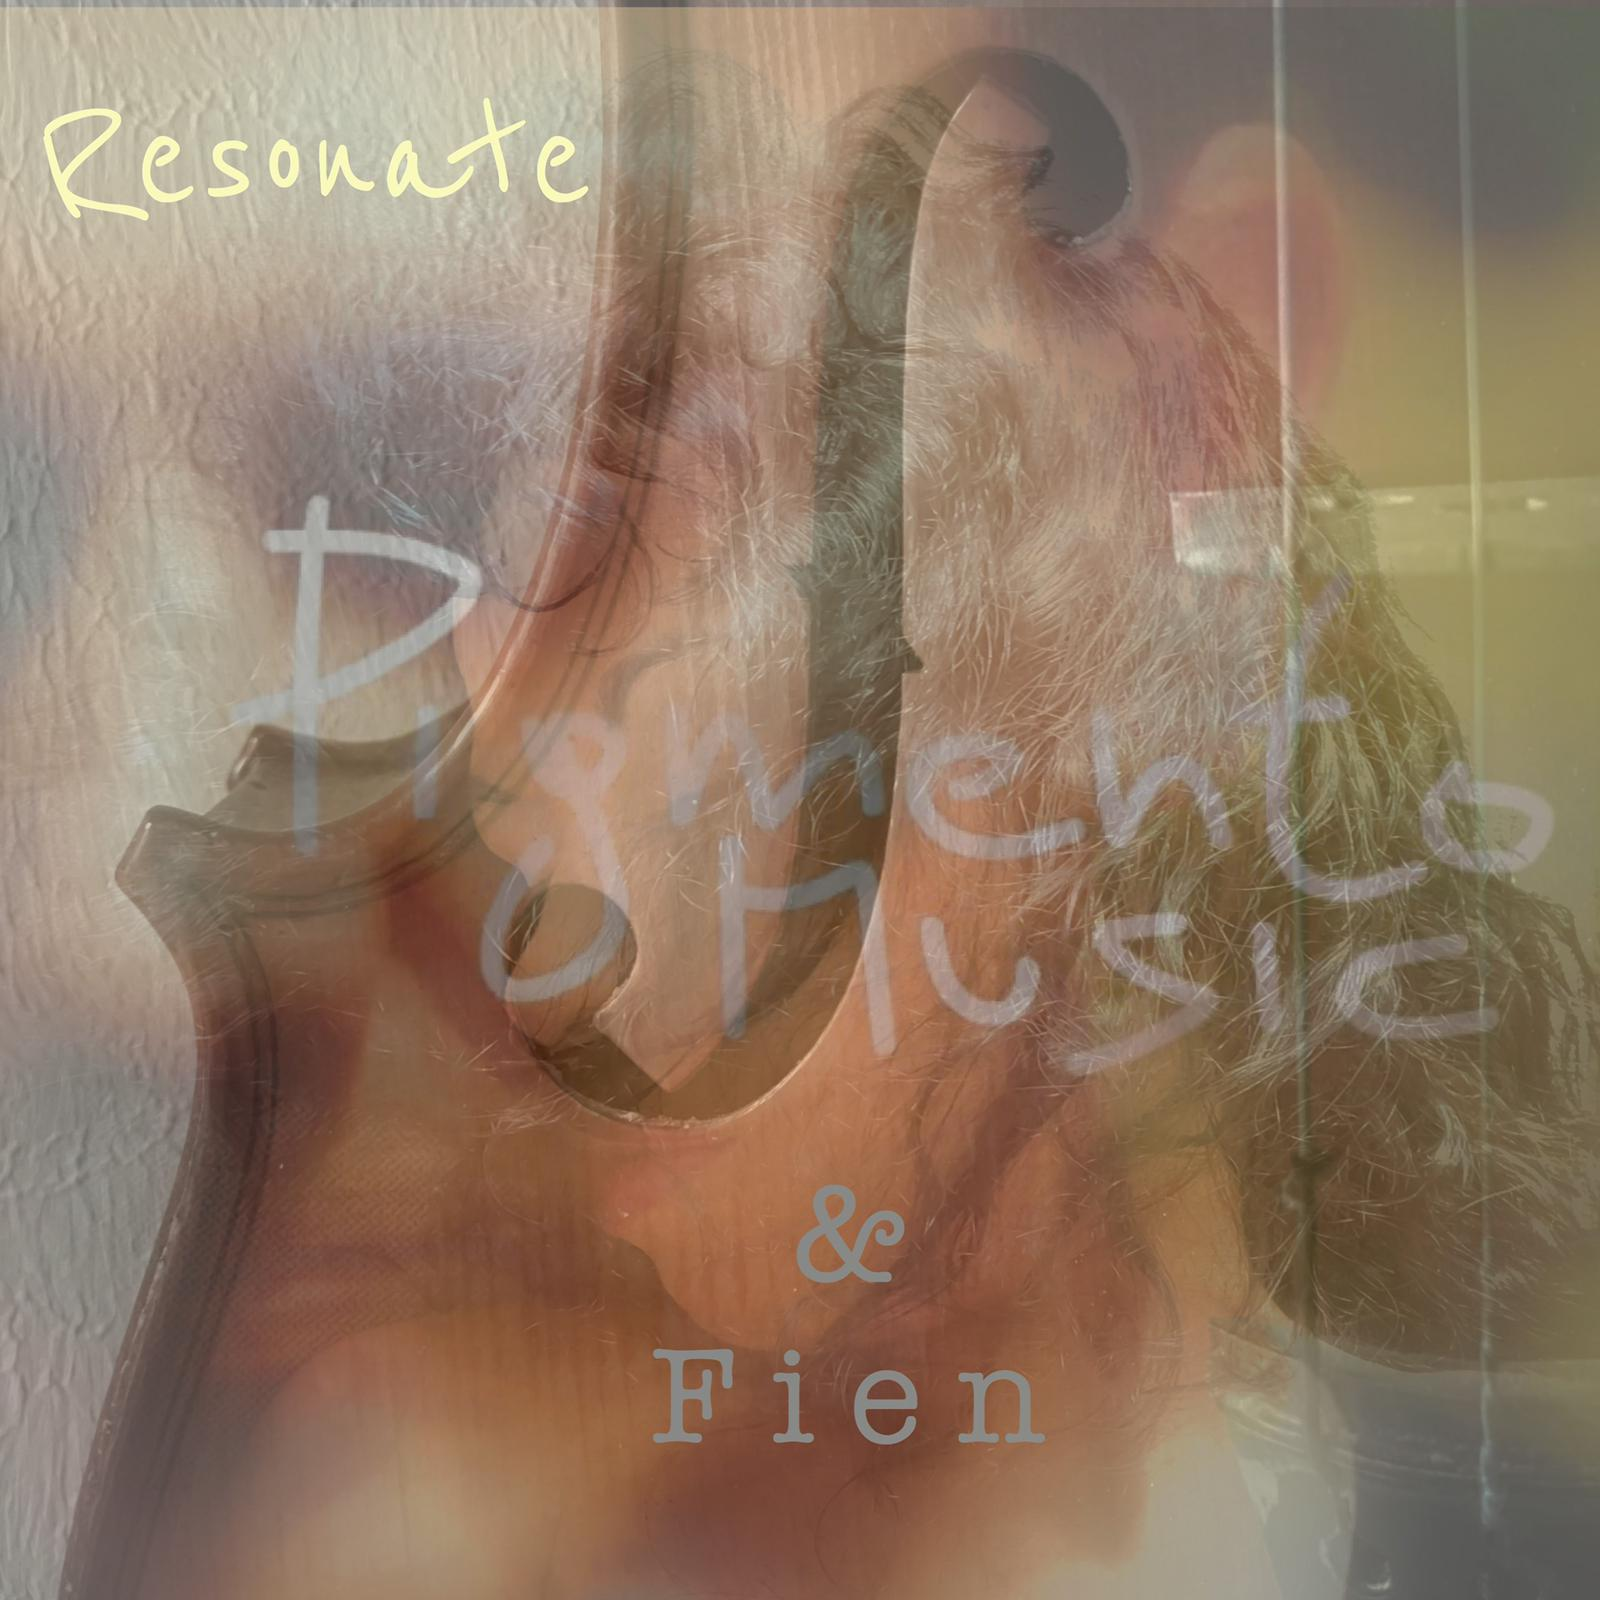 Pigmento Music - Resonate EP